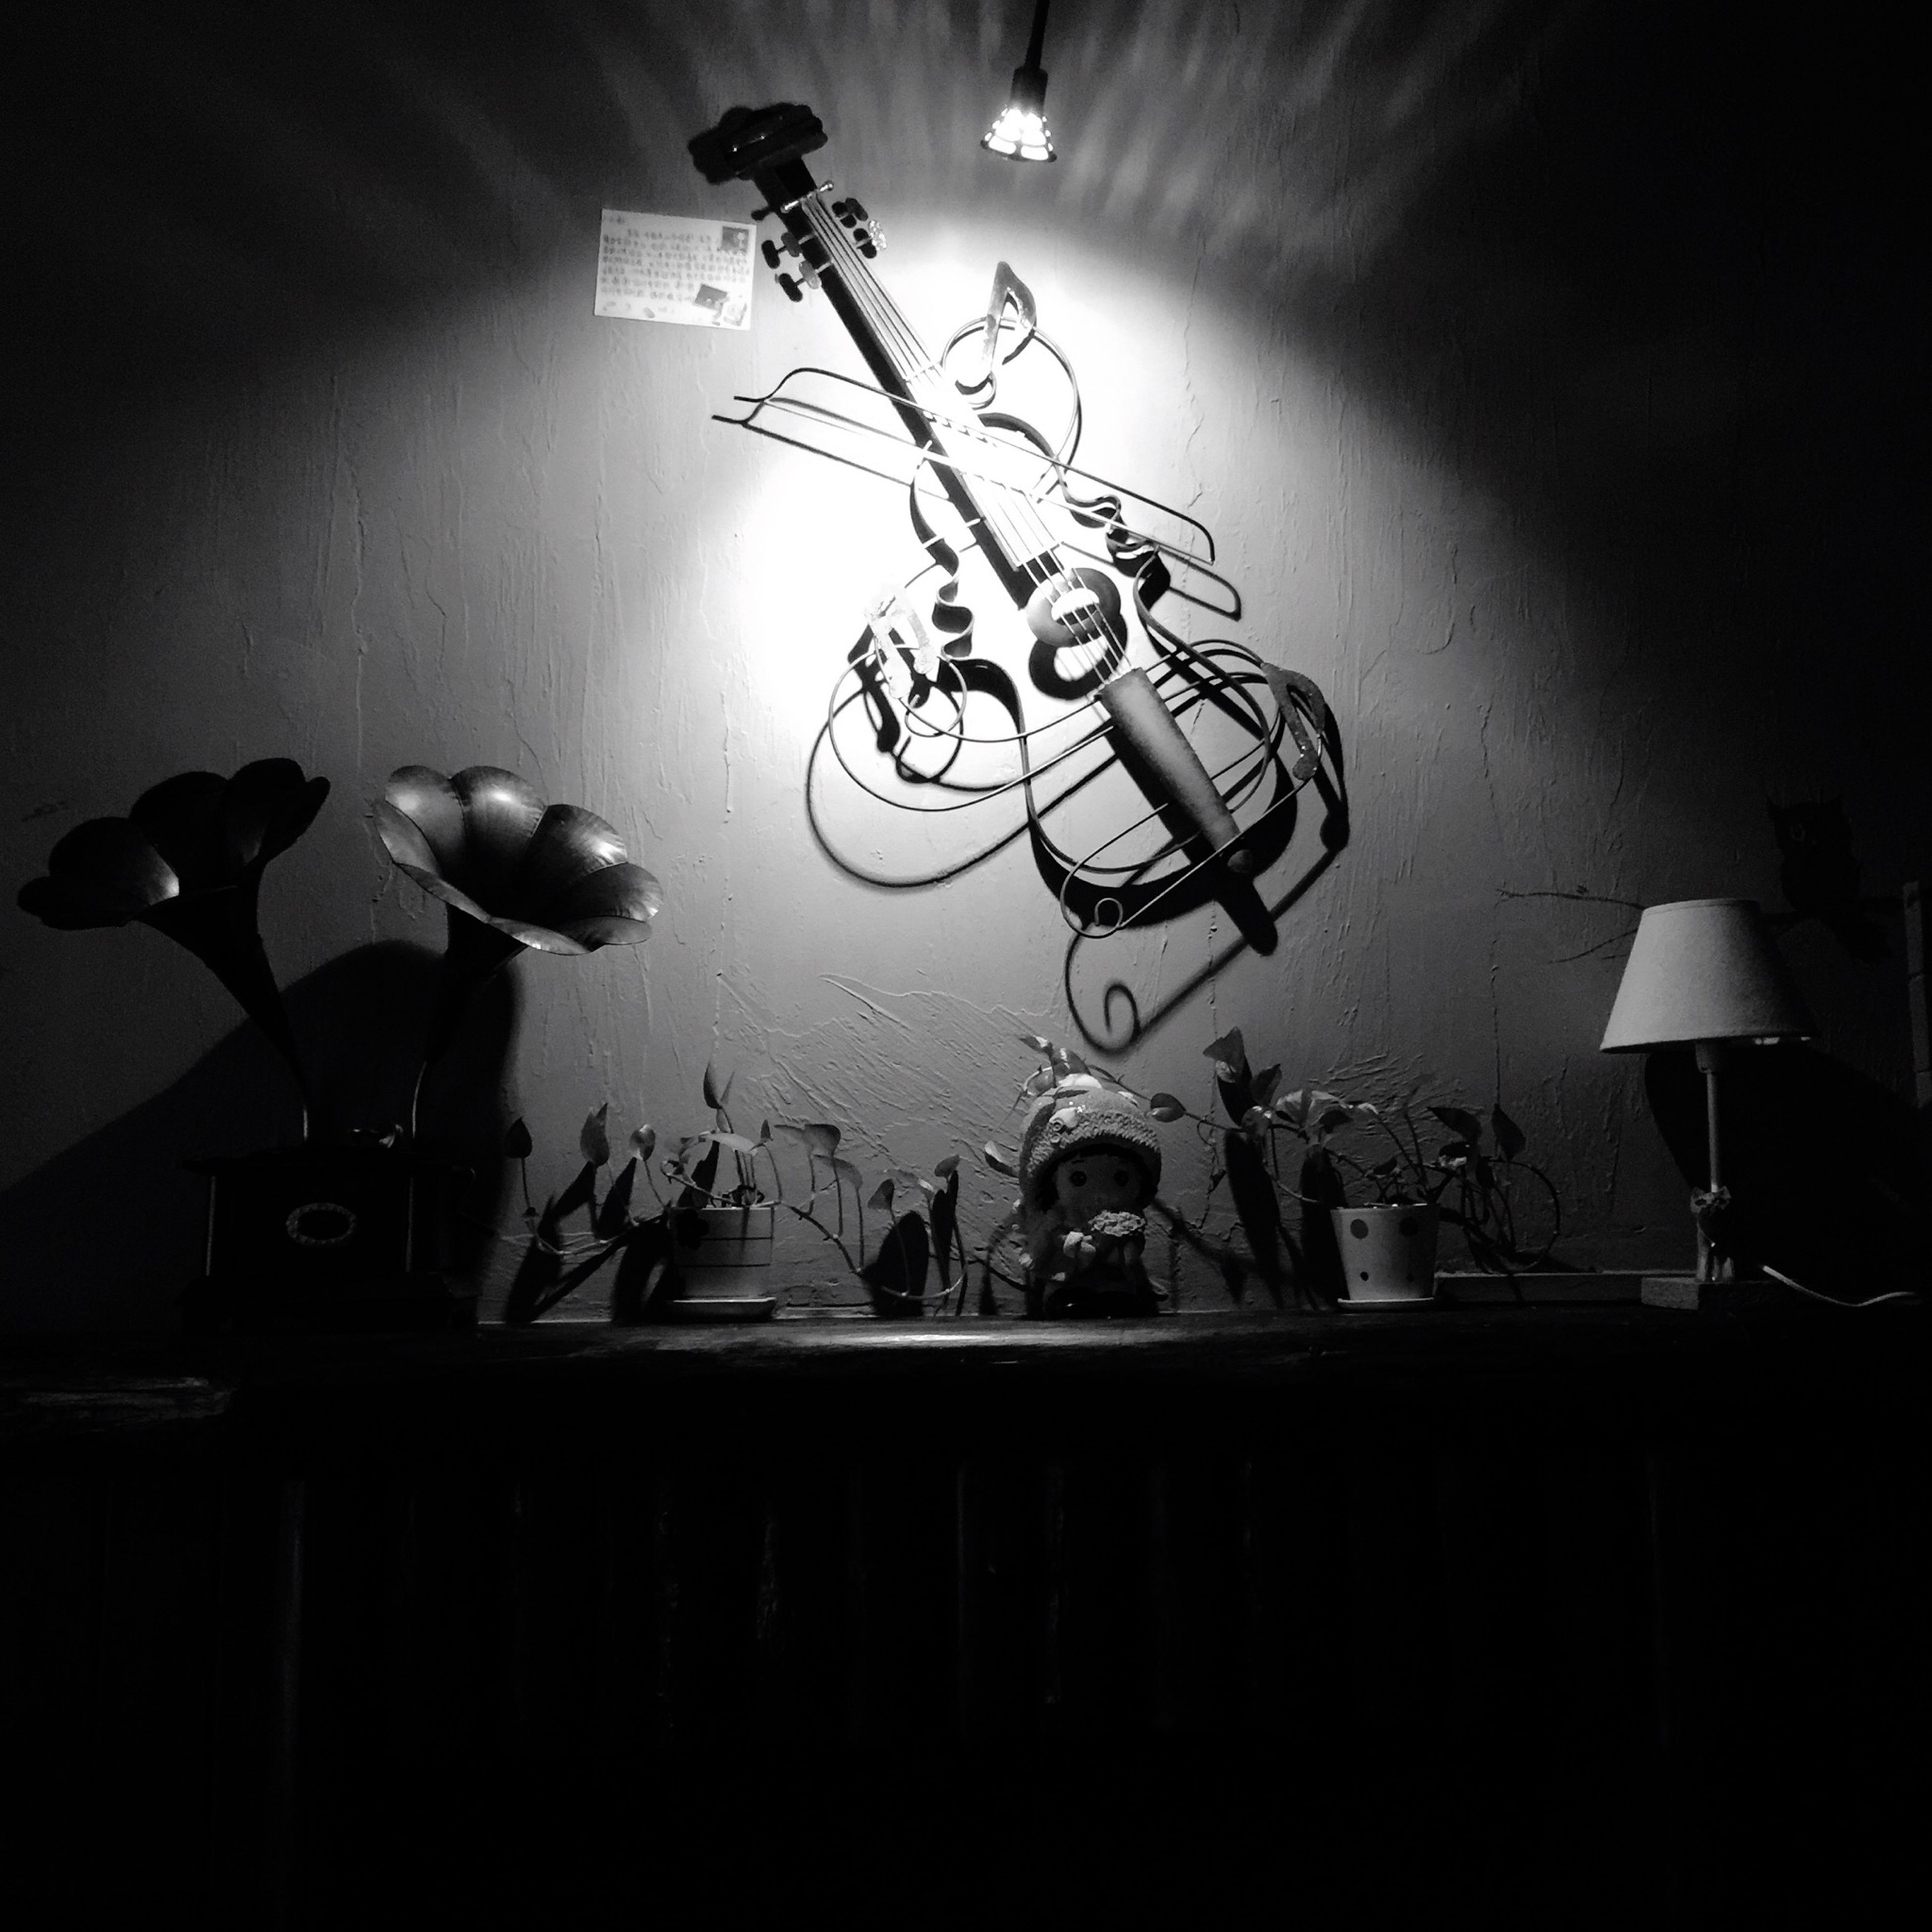 indoors, lighting equipment, illuminated, electricity, low angle view, hanging, electric lamp, electric light, ceiling, built structure, light bulb, street light, decoration, architecture, home interior, silhouette, wall - building feature, lamp, no people, night